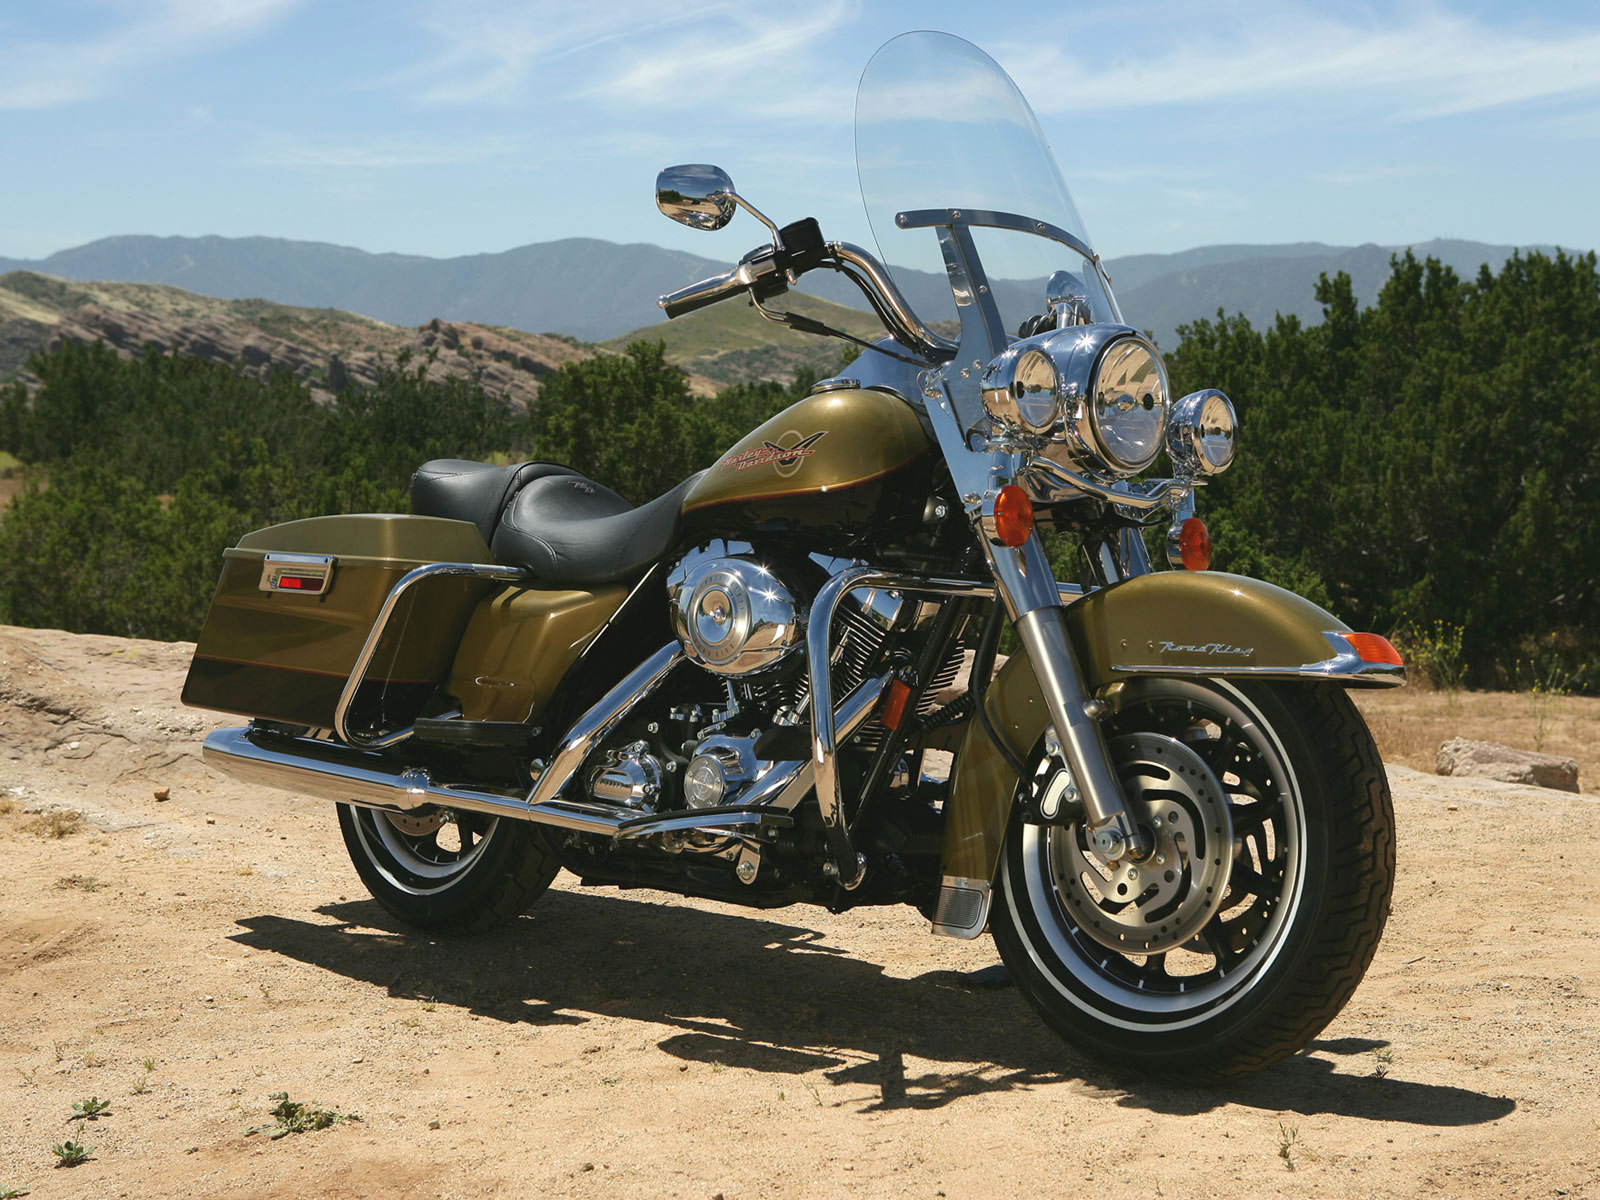 2007 Harley-Davidson FLHR Road King #10